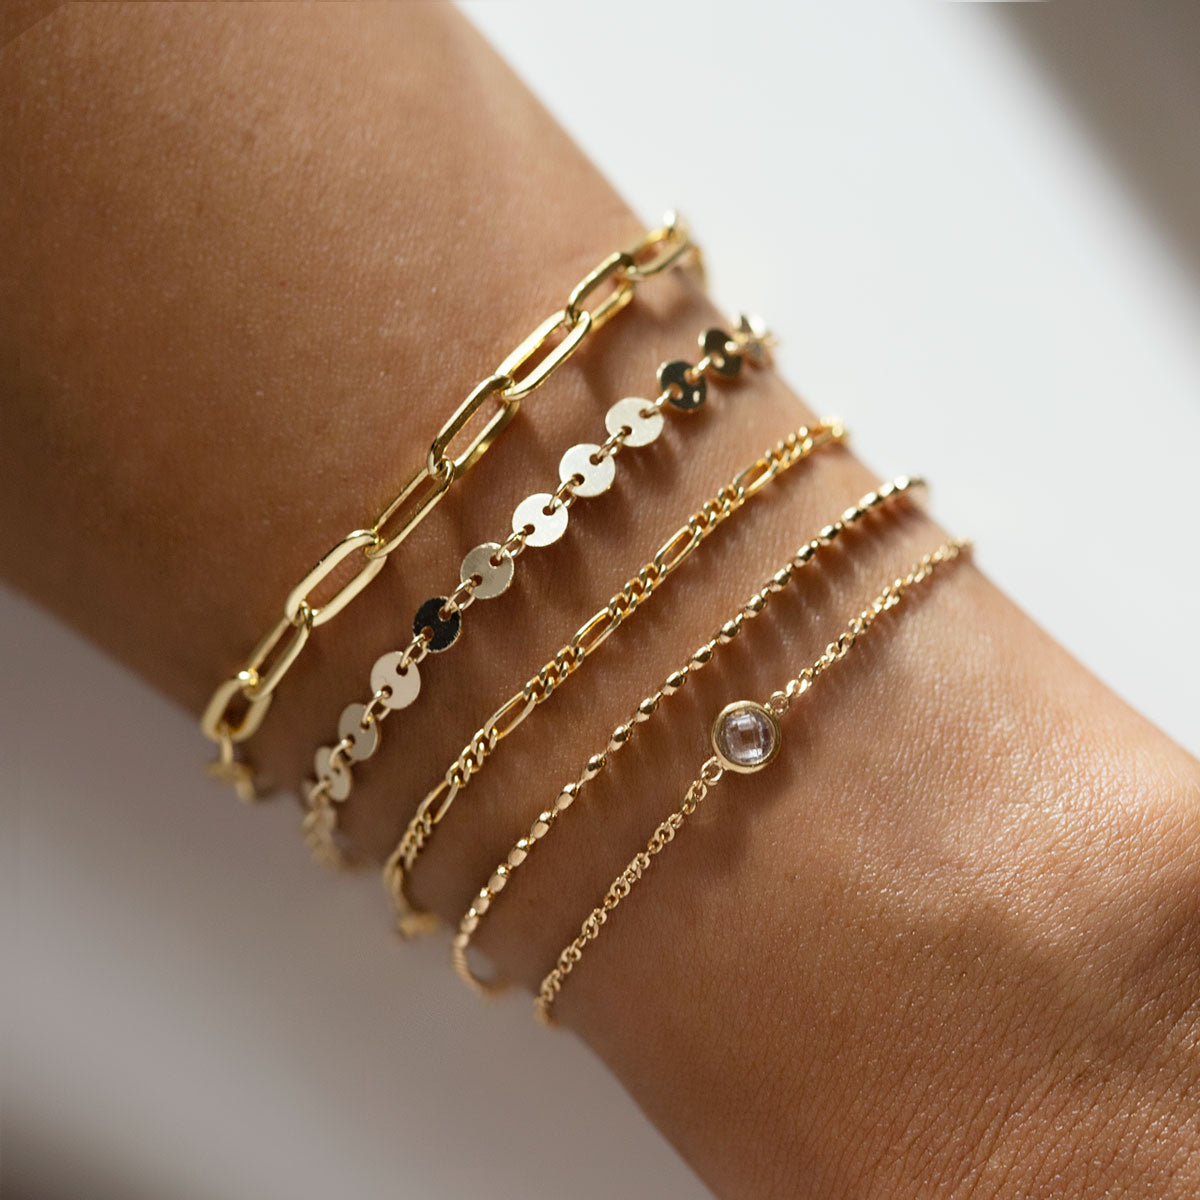 Solitaire Singapore Chain Bracelet